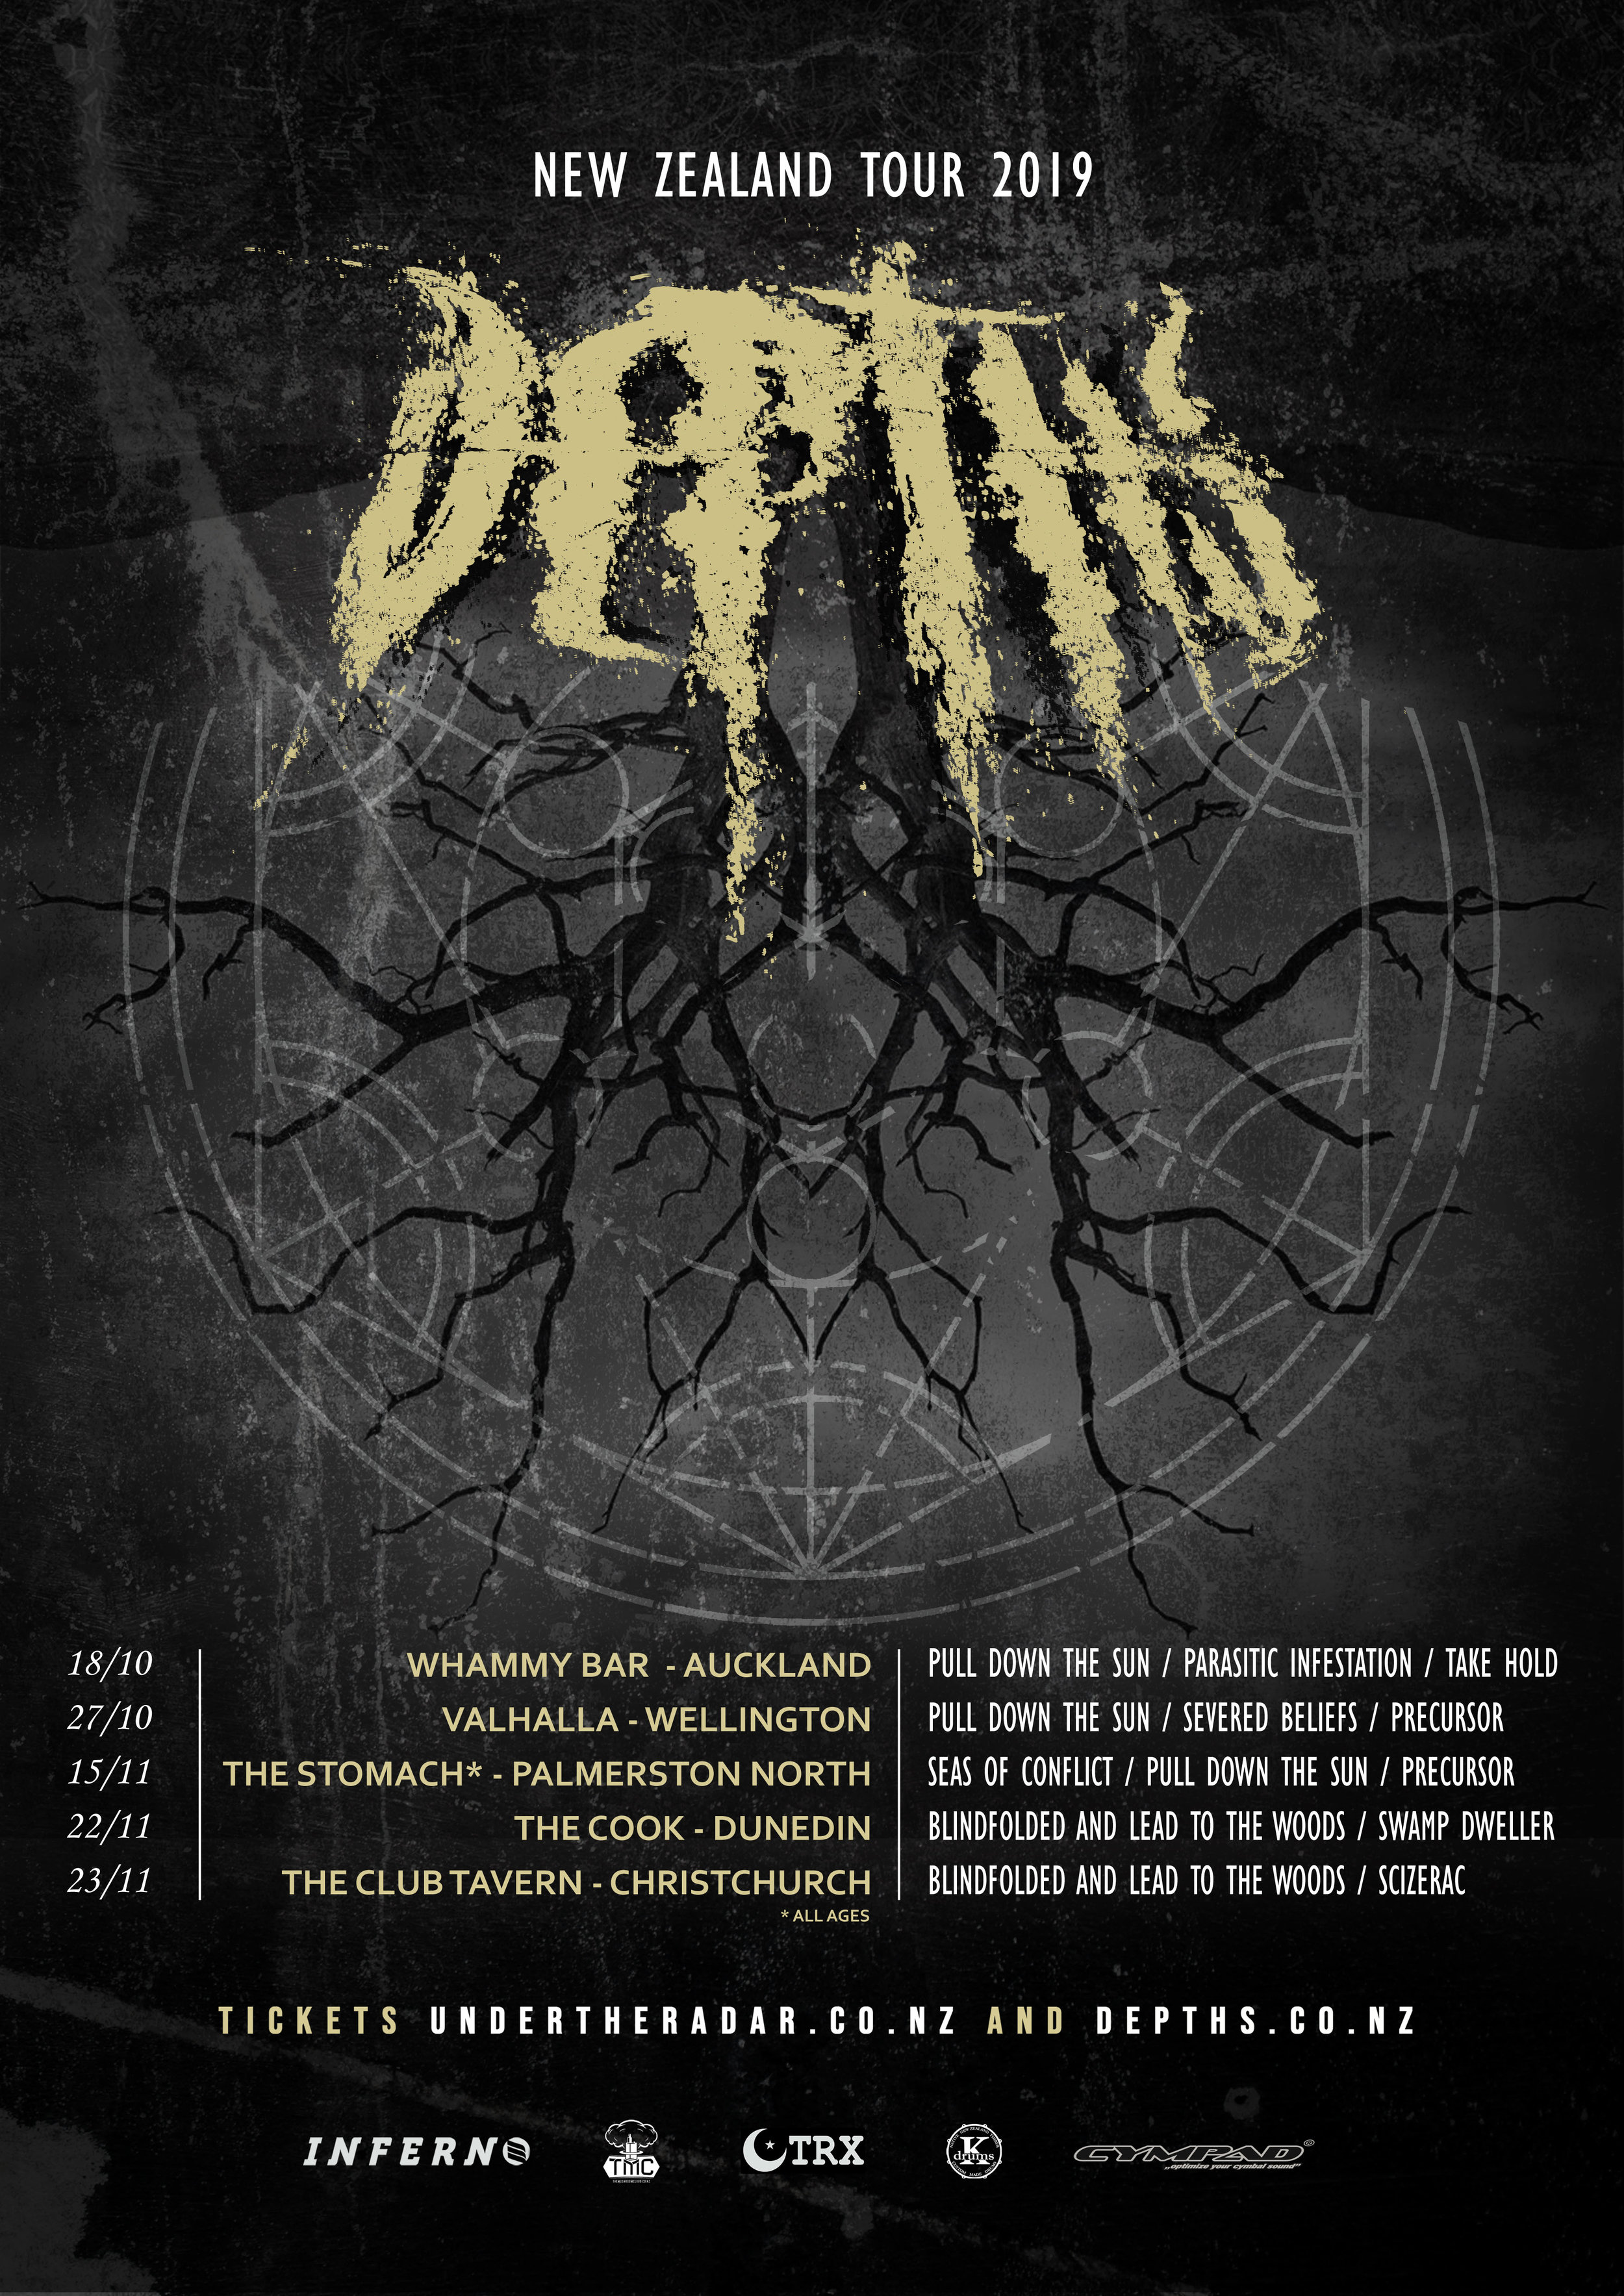 NZ TOUR 2019 - Hitting the road for a small run of shows over the country this Oct/Nov. These will be Depths' only NZ shows this year so don't miss out!